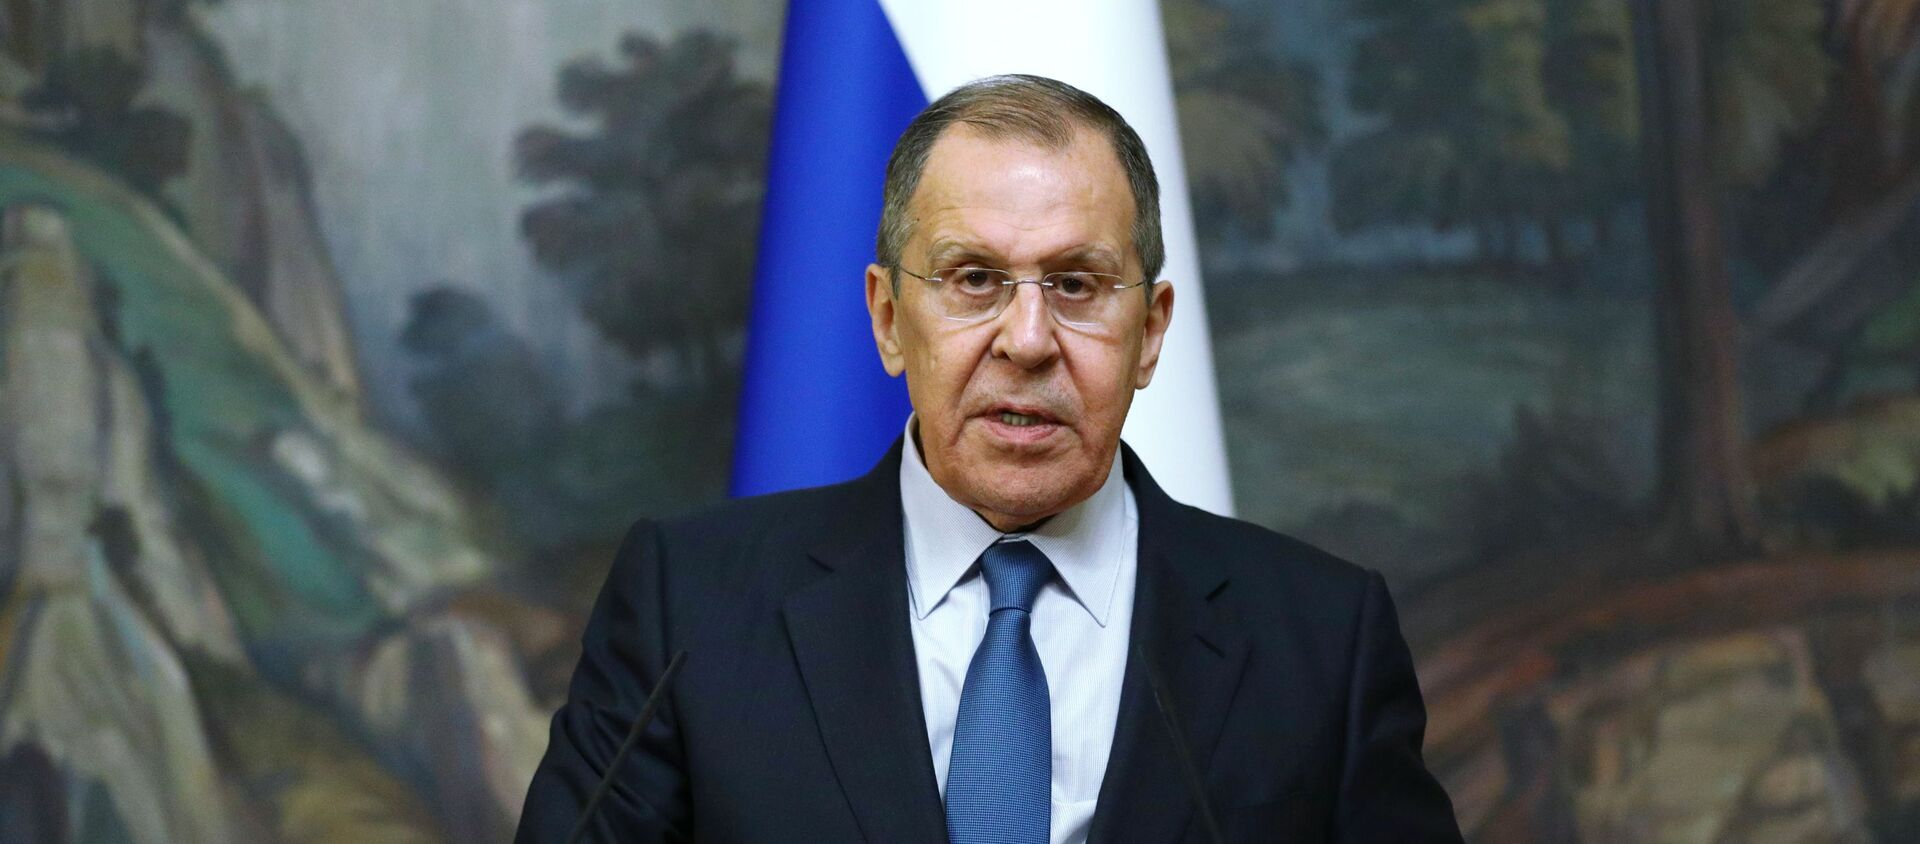 Russian Foreign Minister Sergey Lavrov delivers a joint statement after trilateral talks between Russia, Armenia and Azerbaijan over Nagorno-Karabakh ceasefire, 10 October 2020 - Sputnik Italia, 1920, 26.01.2021